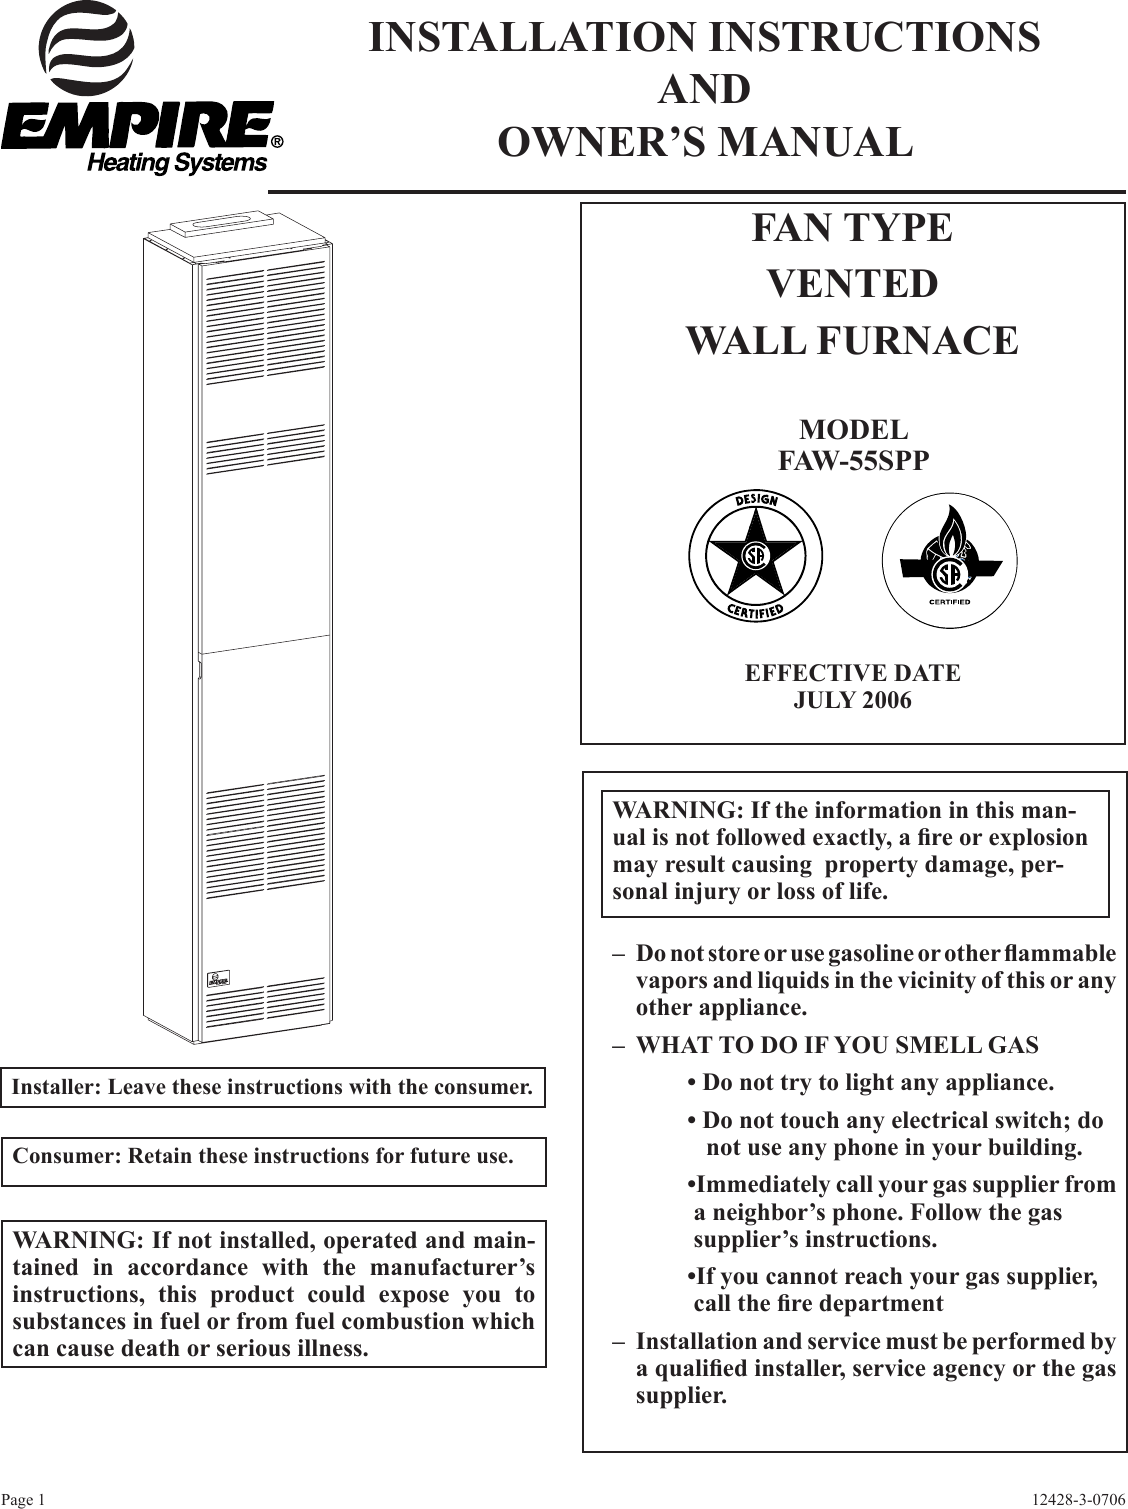 Empire Comfort Systems Faw 55spp Users Manual 12428 3 0706 Wall Furnace Wiring Diagram Page 1 Of 12